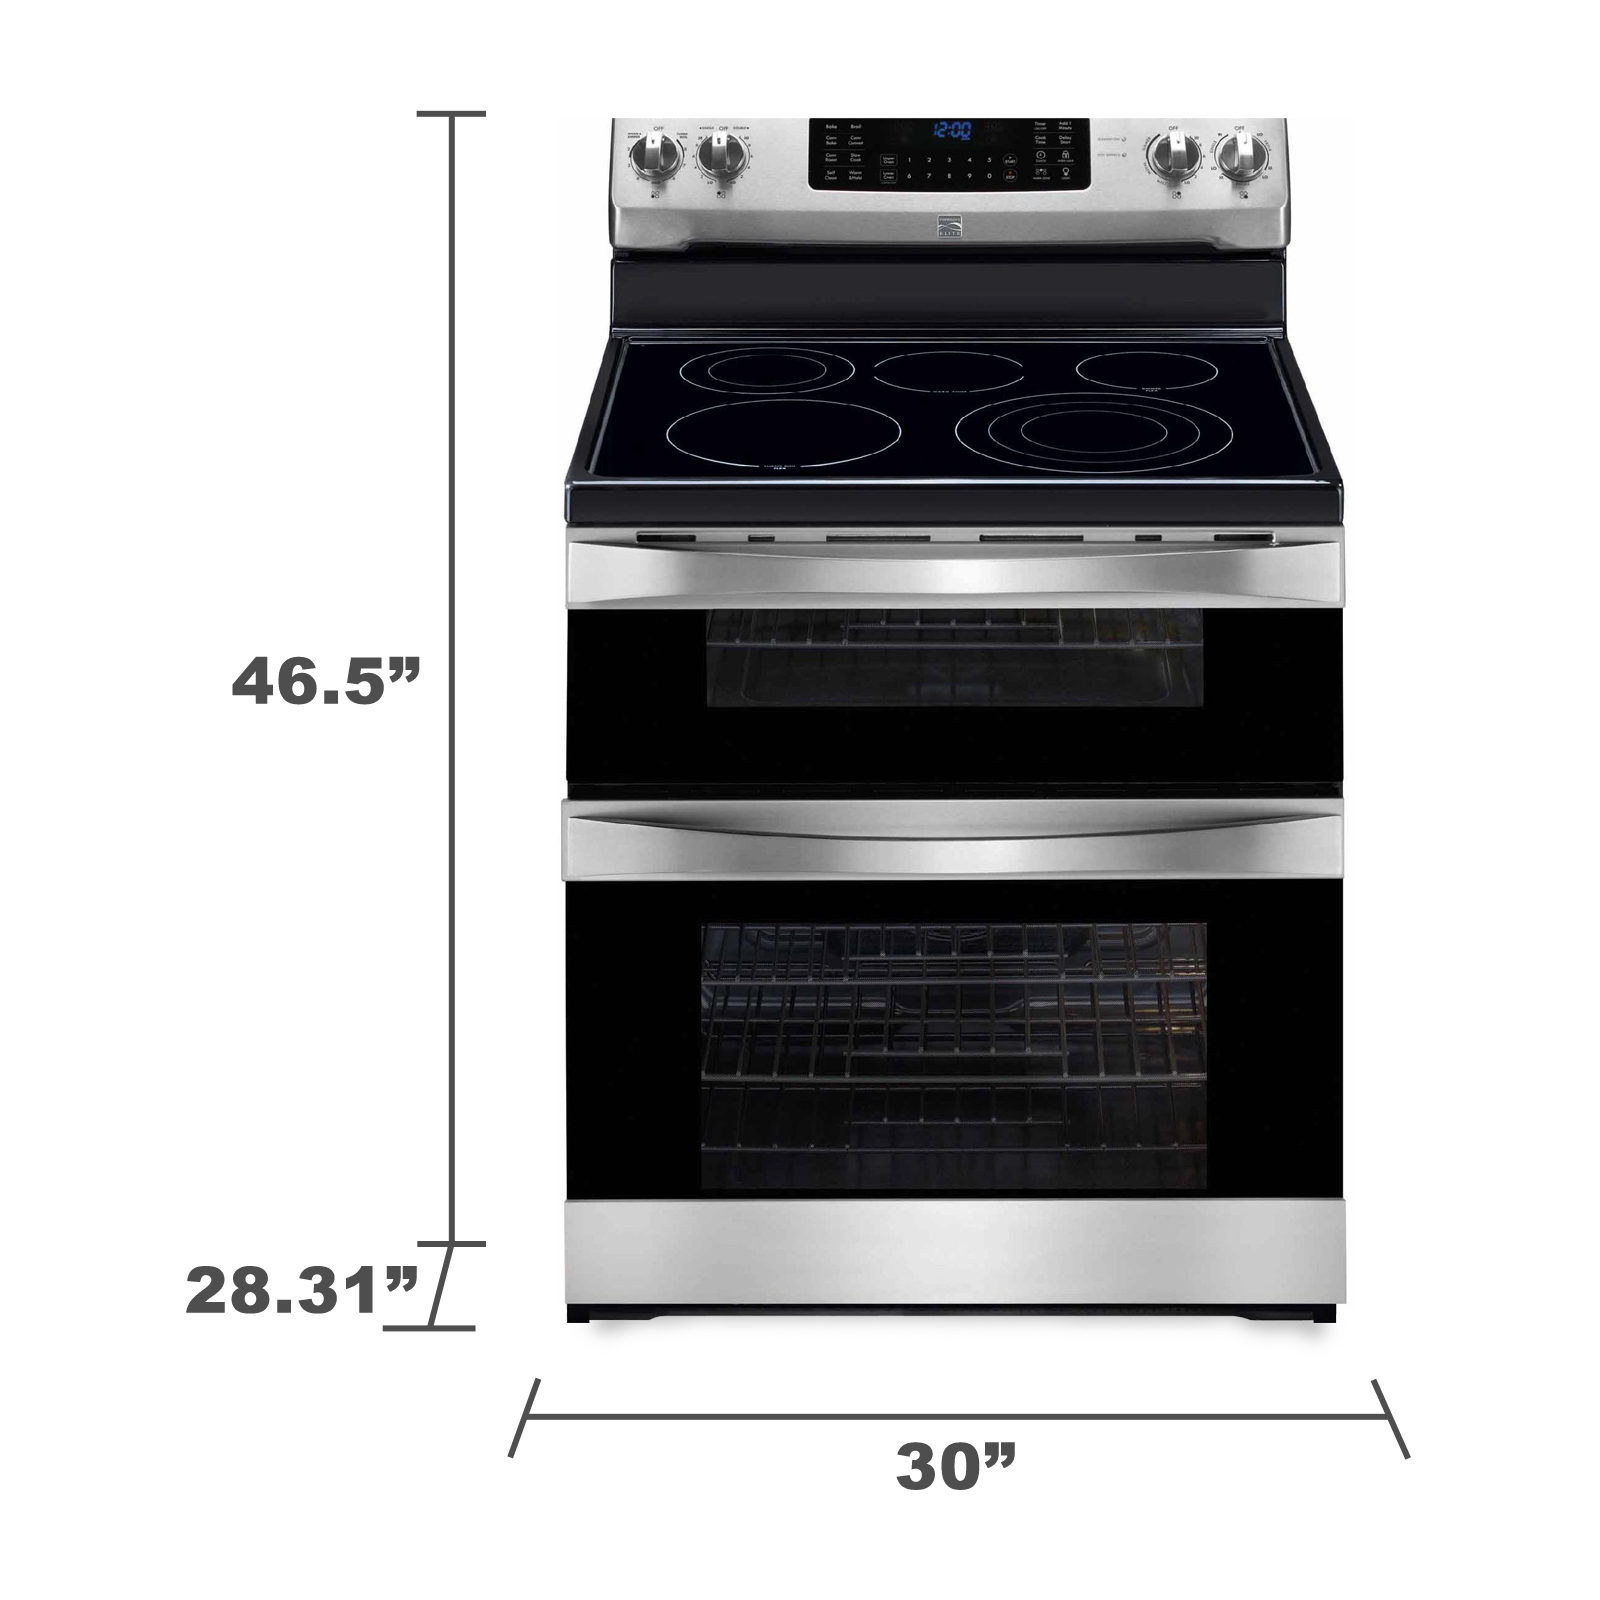 Kenmore Elite 97313 6.9 cu. ft. Double-Oven Electric Range w/ True Convection - Stainless Steel w Black Trim